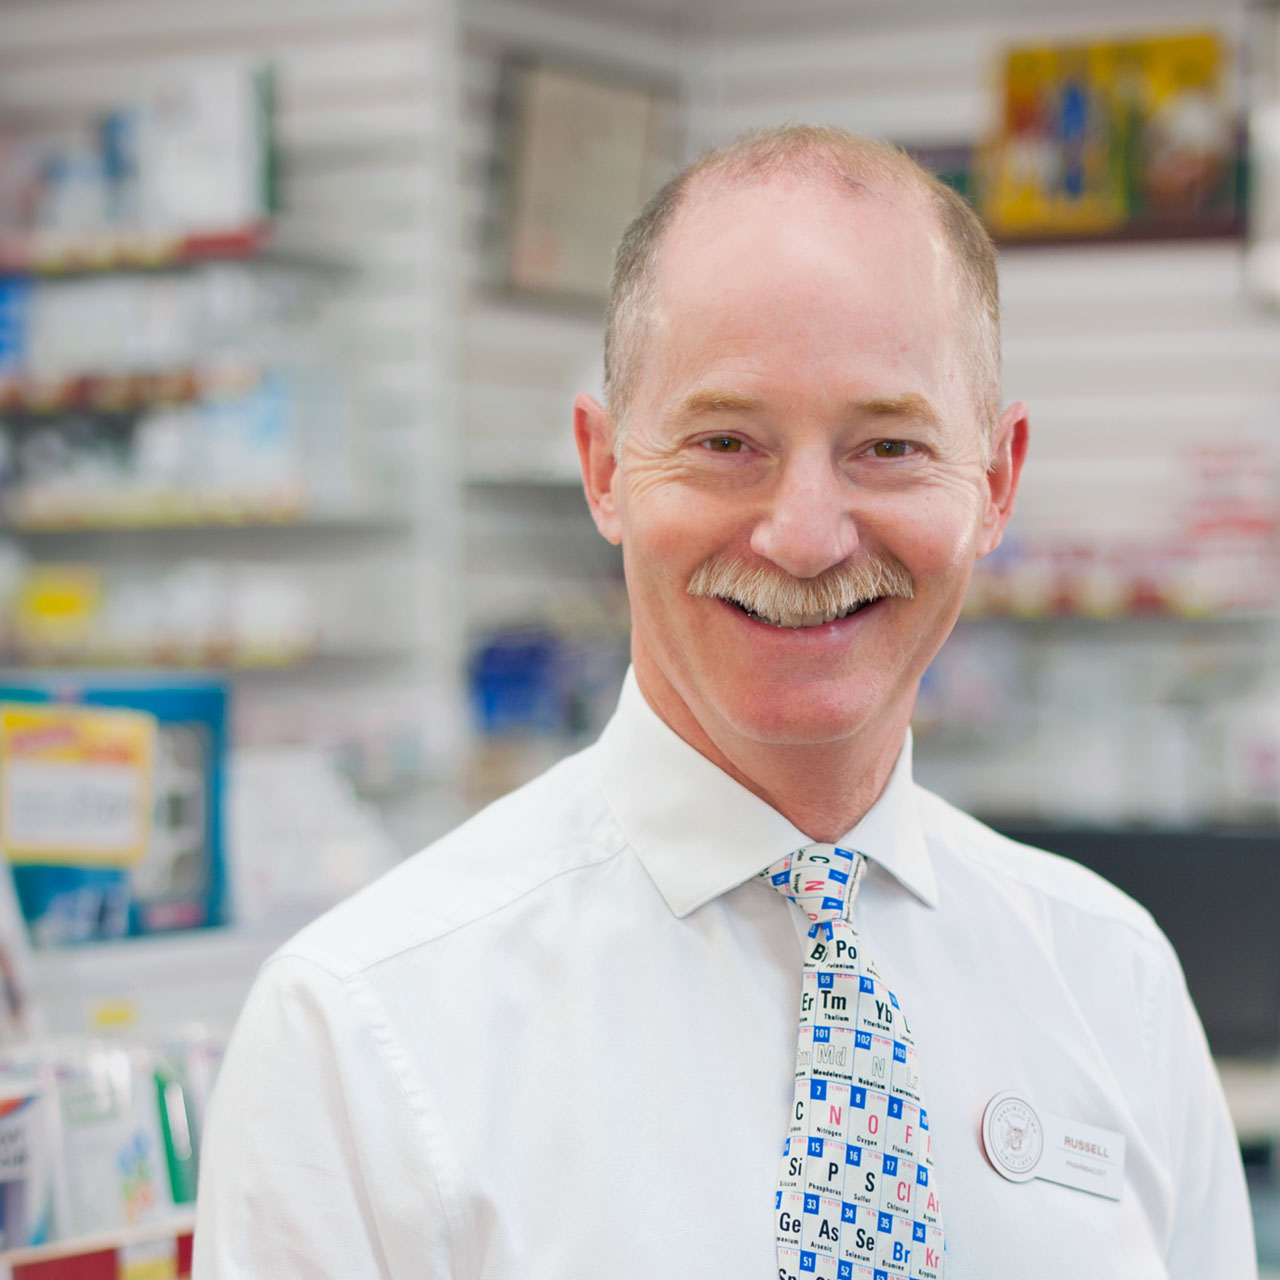 Find our pharmacist Russell at our Lantzville location